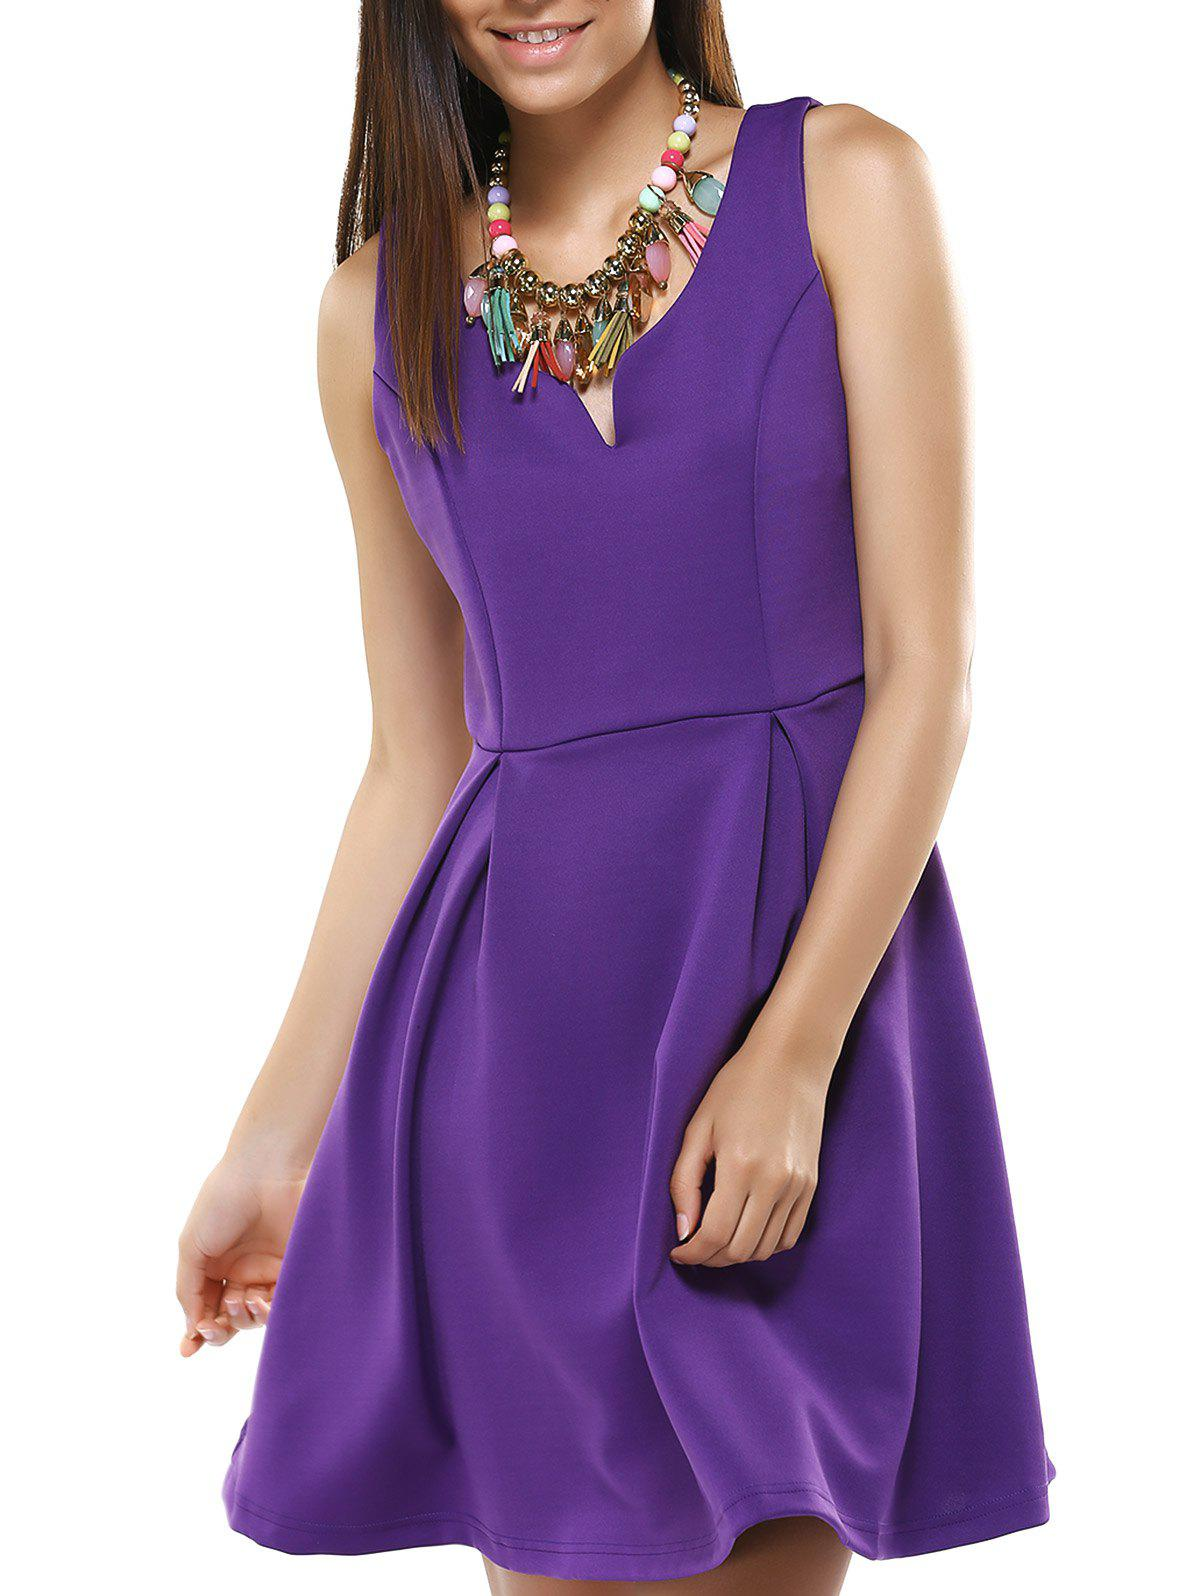 V Neck Fit and Flare Cocktail Dress - PURPLE 2XL